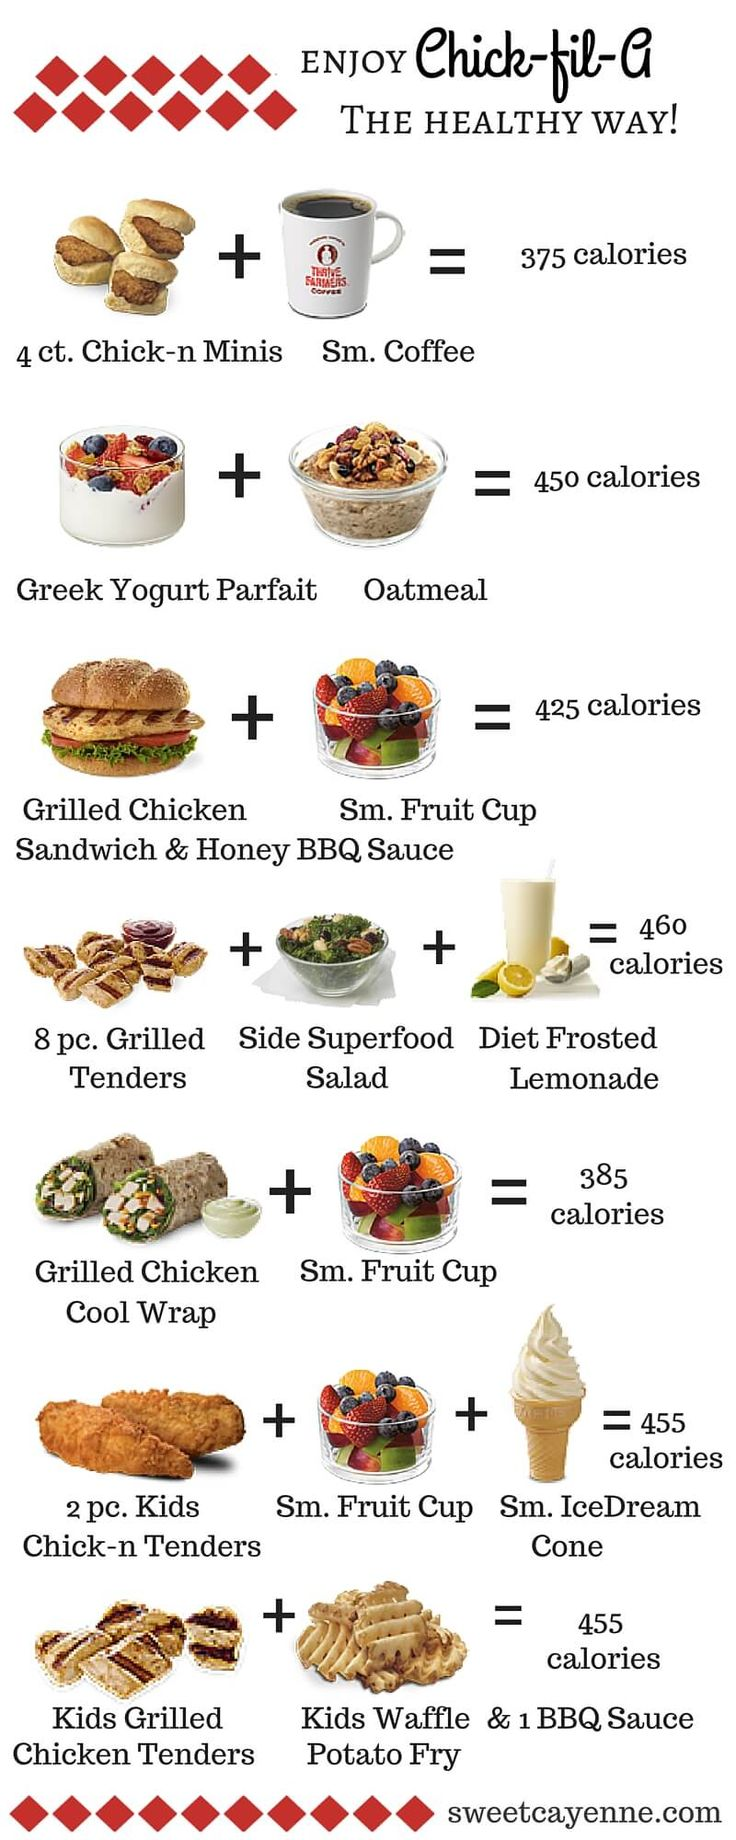 Healthy dining options at Chick-Fil-A. These clock in at less than 500 calories and offer a good nutritional punch w/ lean protein, fruits and veggies.